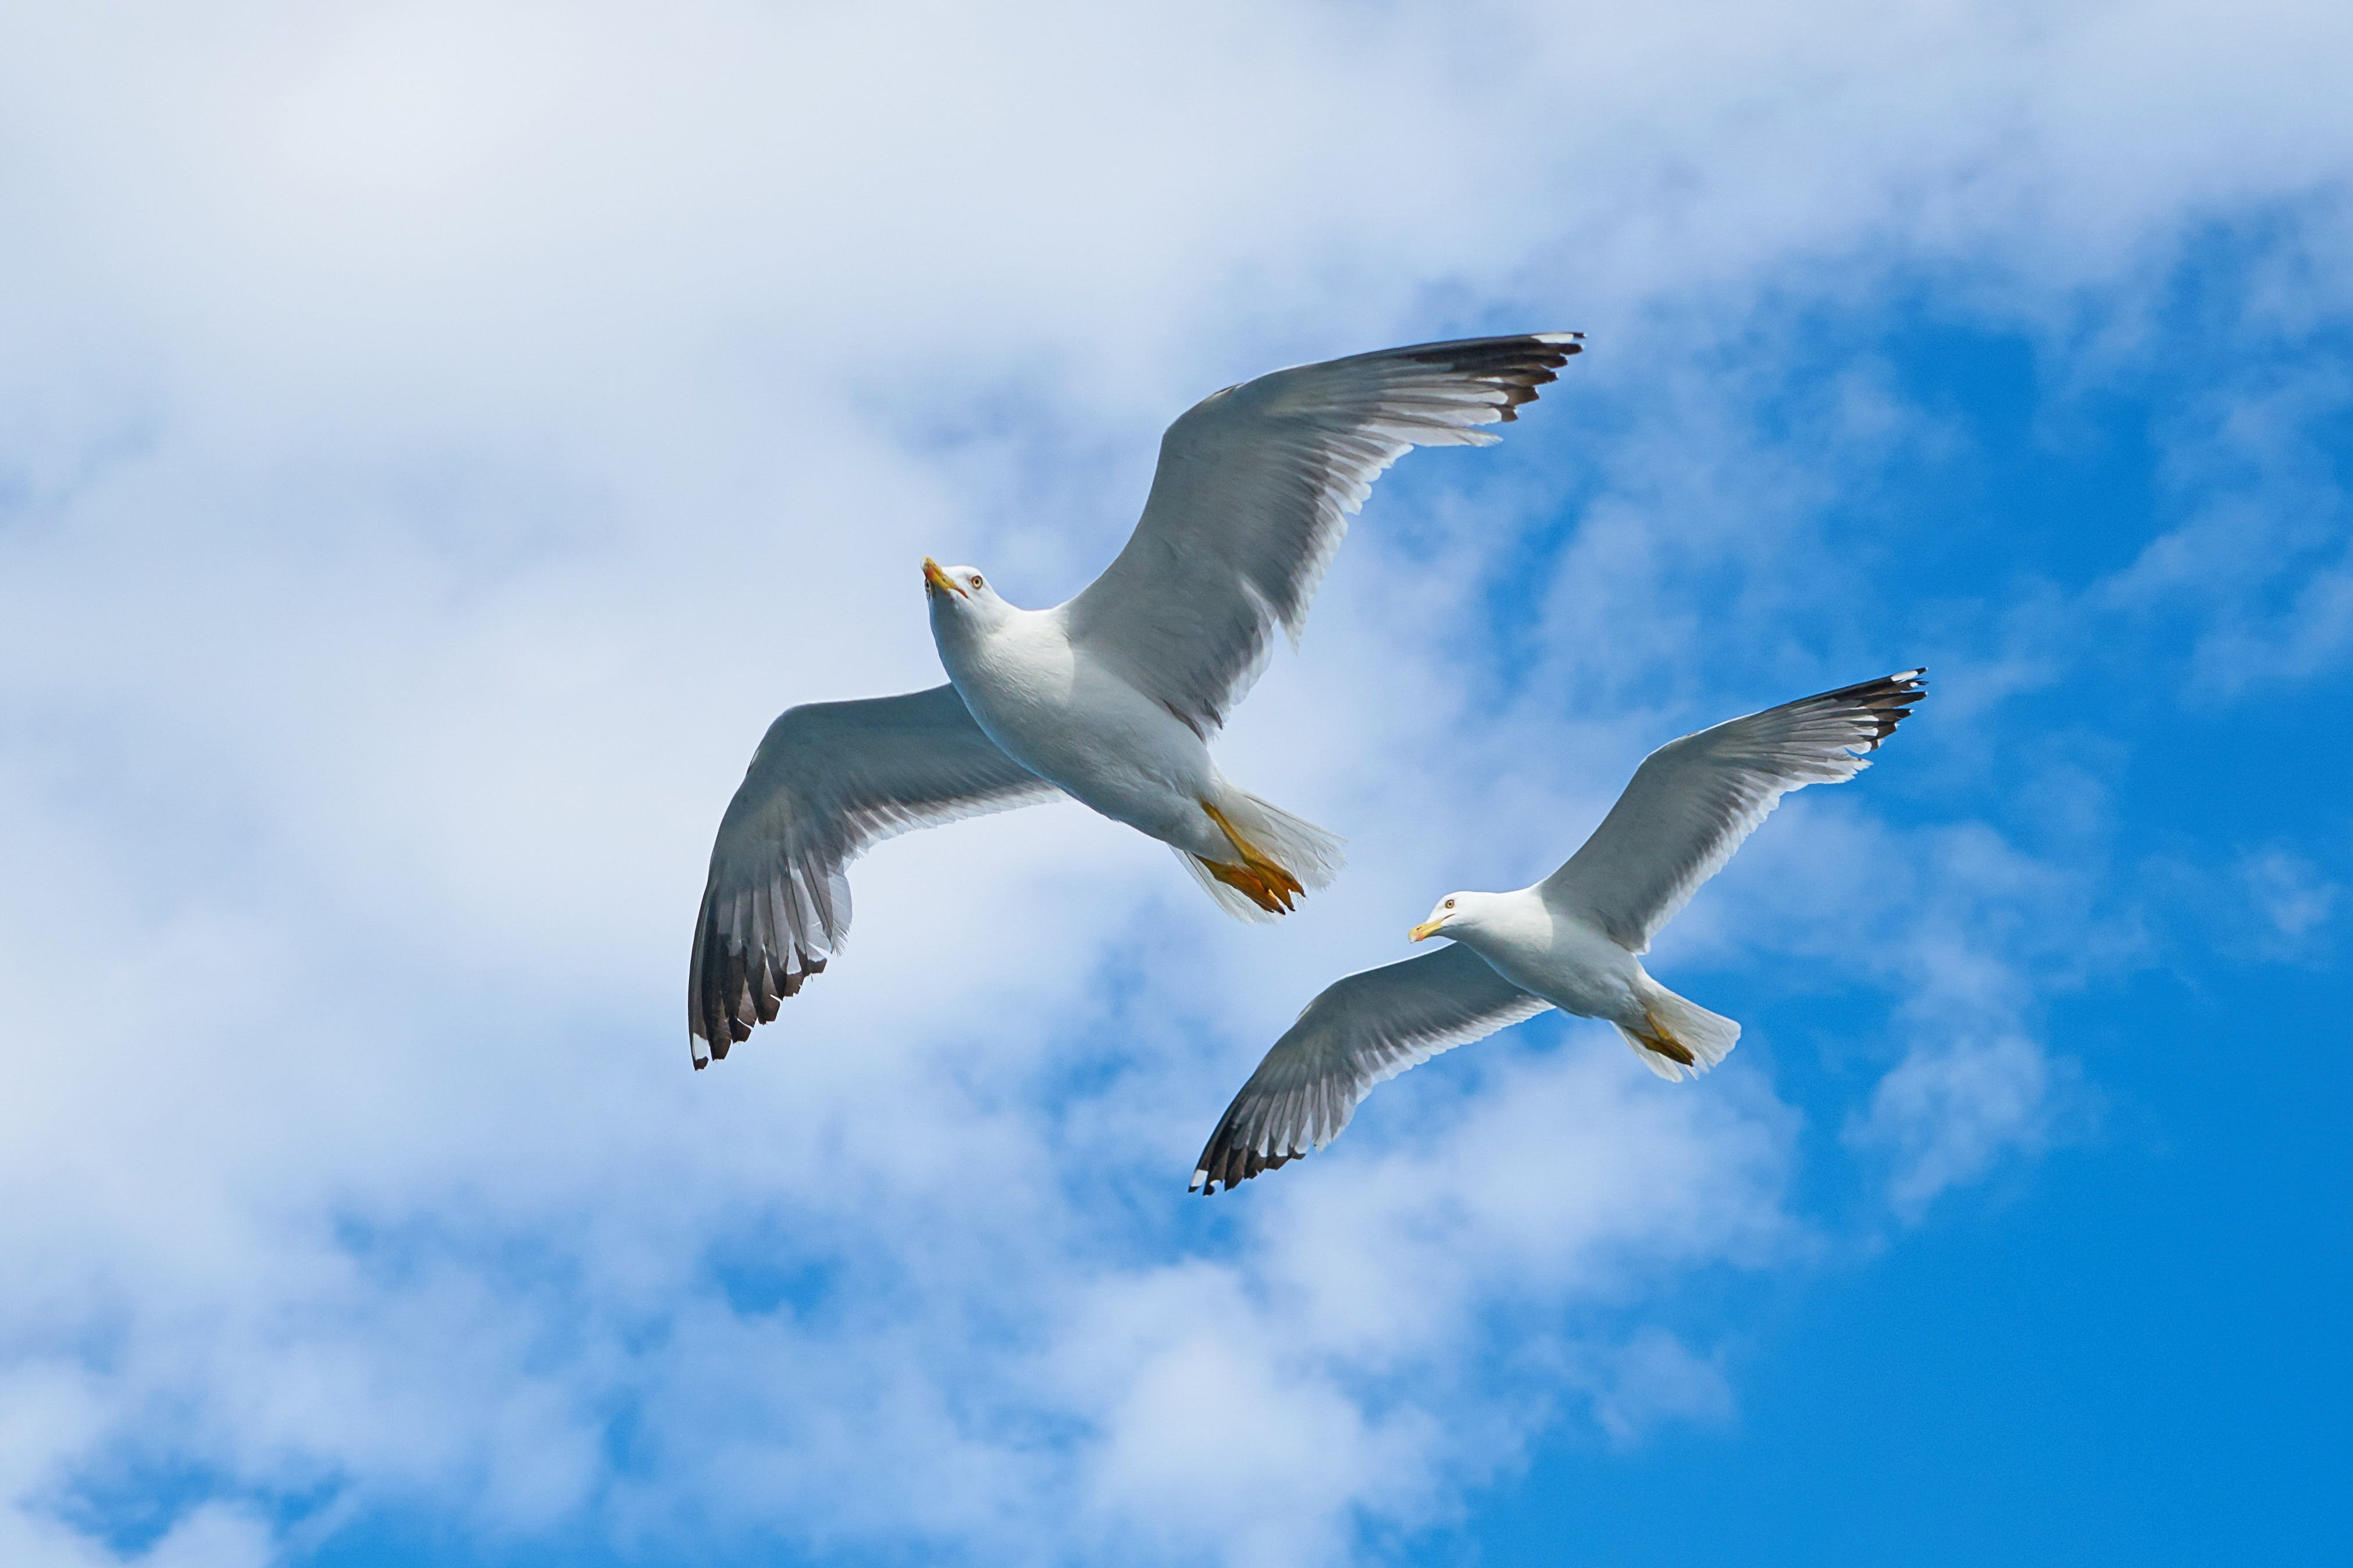 Two White Birds Flying Under Cloudy Sky